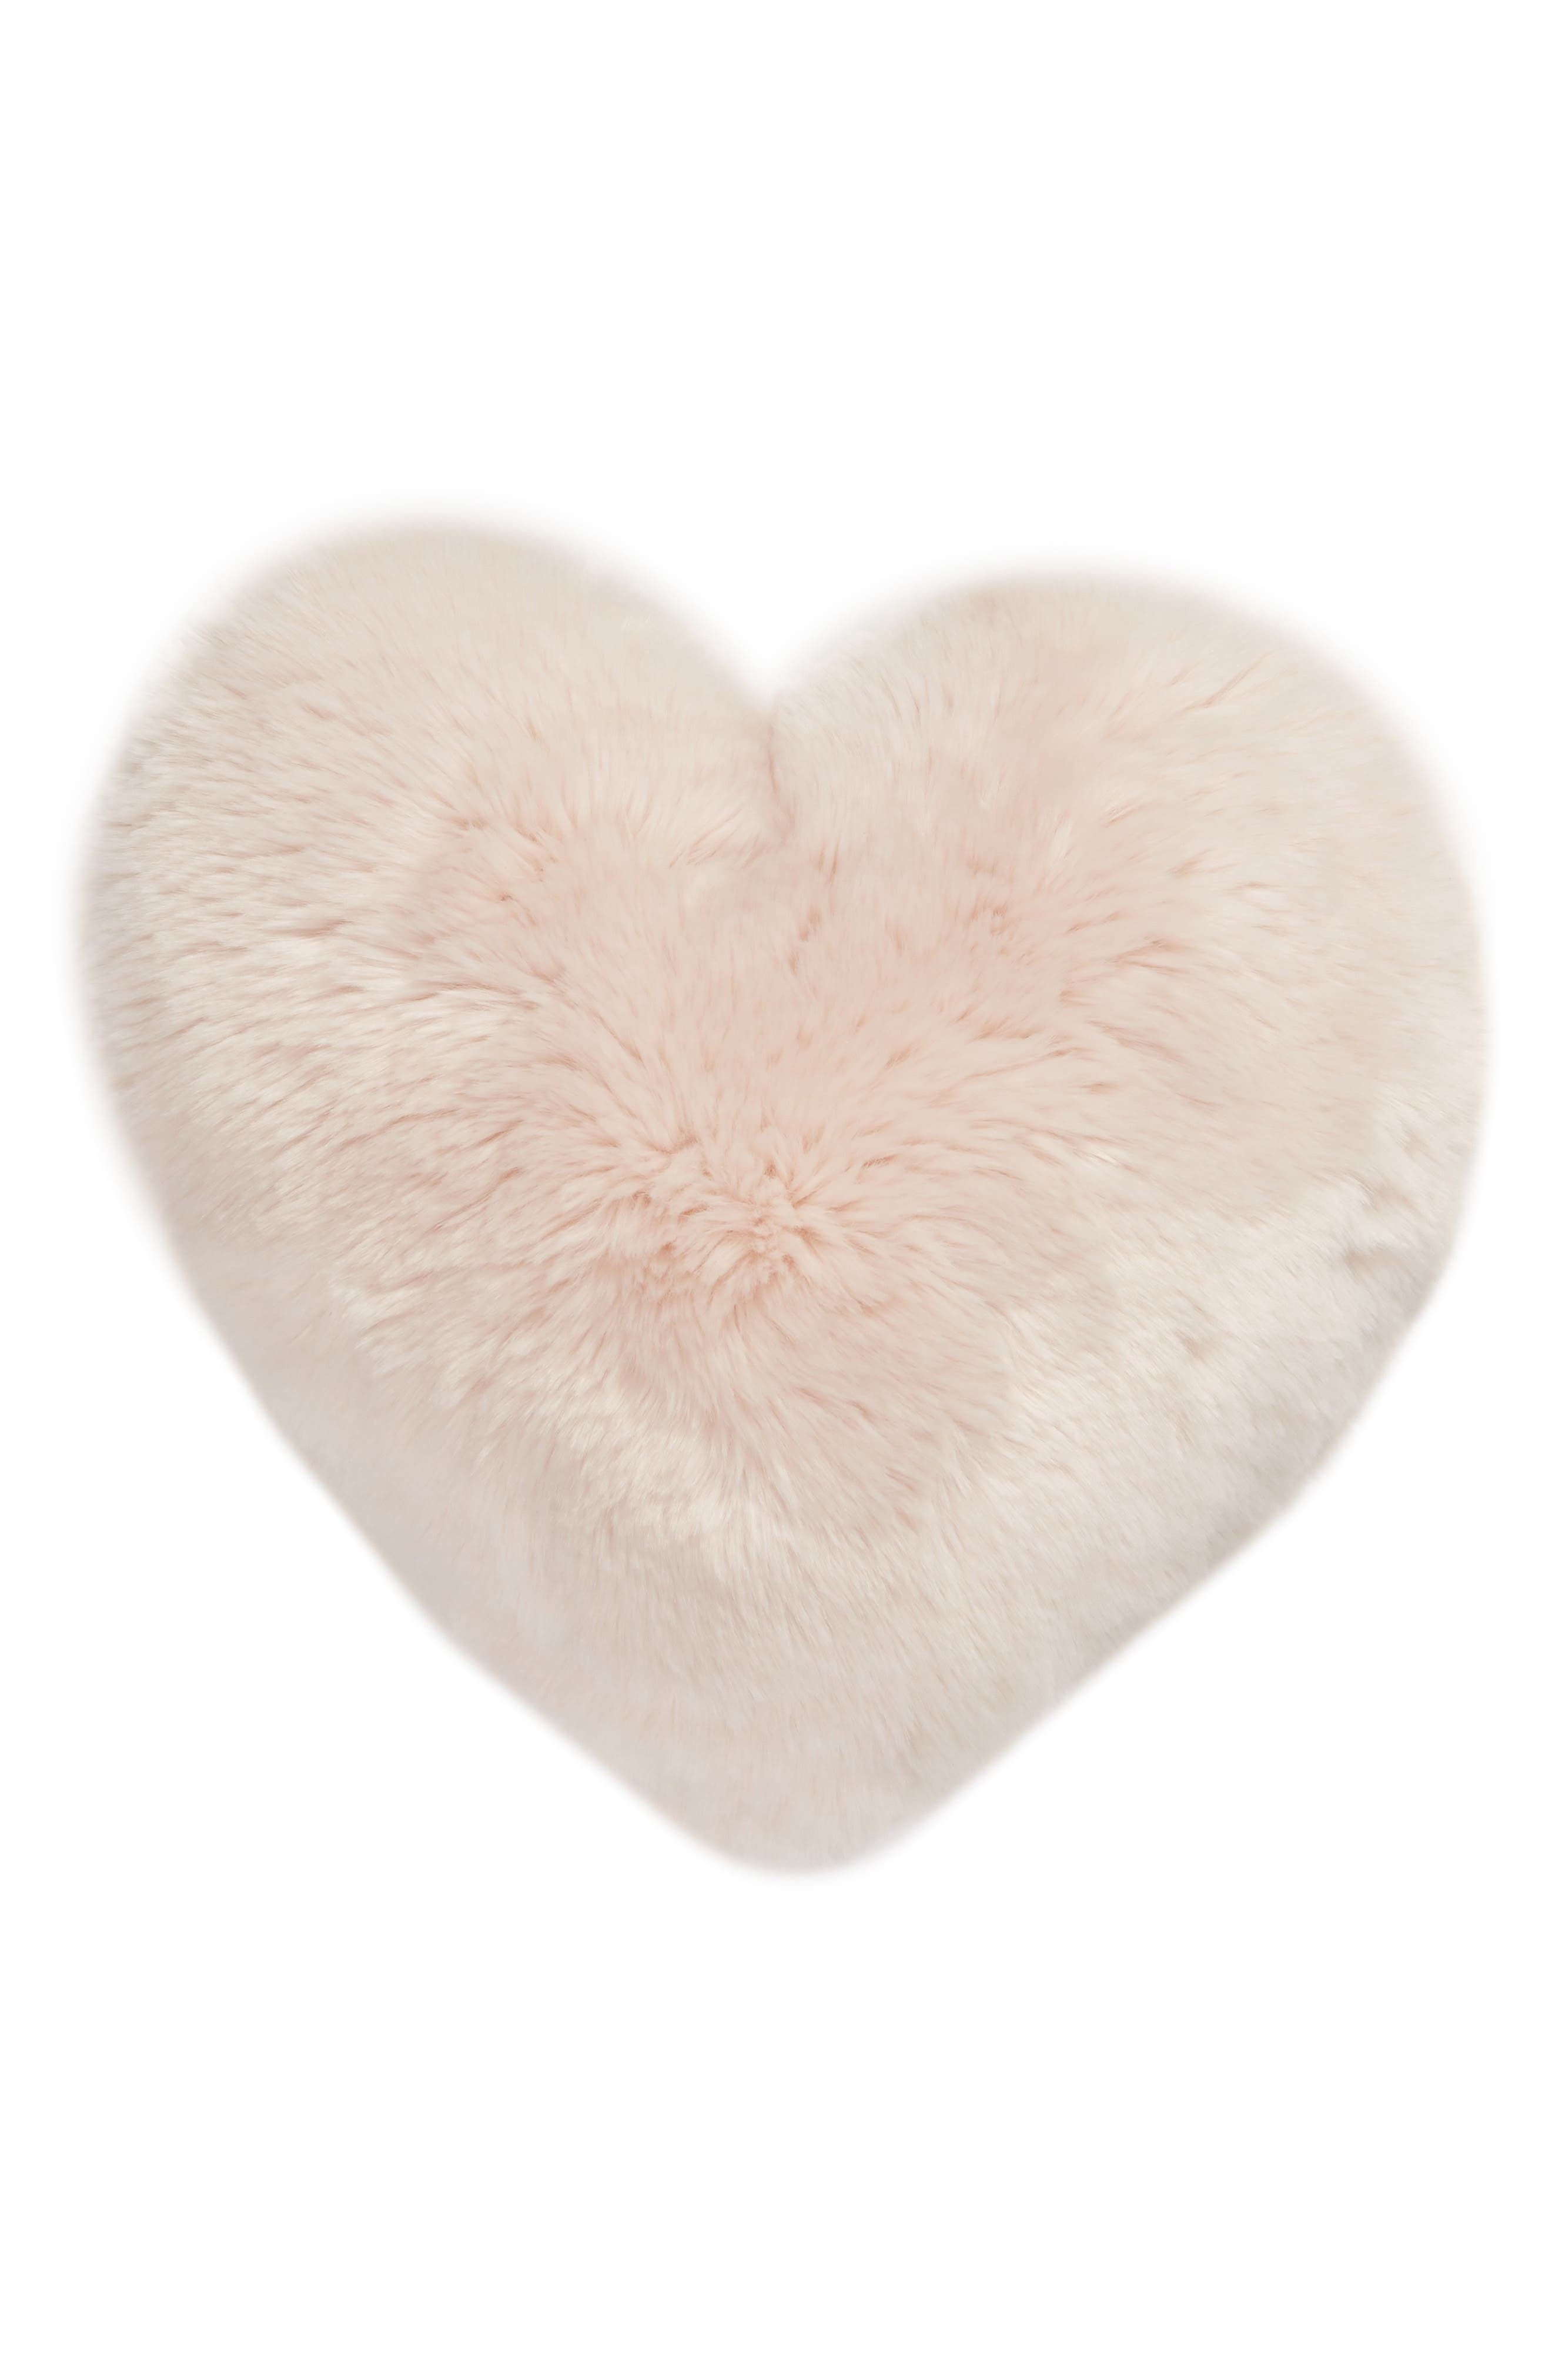 NORDSTROM AT HOME,                             Cuddle Up Faux Fur Heart Accent Pillow,                             Main thumbnail 1, color,                             PINK FROSTY